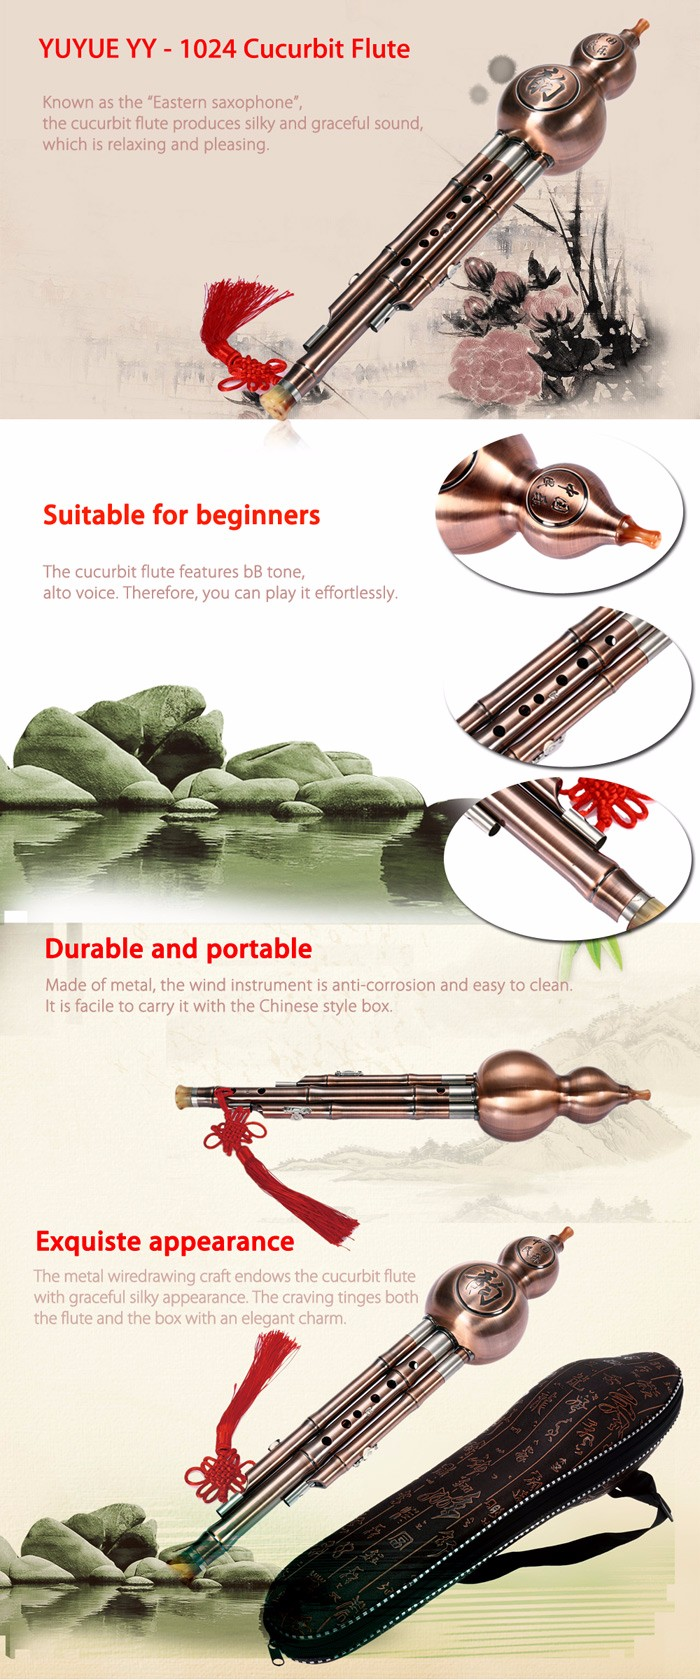 YUYUE YY - 1024 ClassicalTwo-tone Cucurbit Flute Bronze Chinese Style Instrument